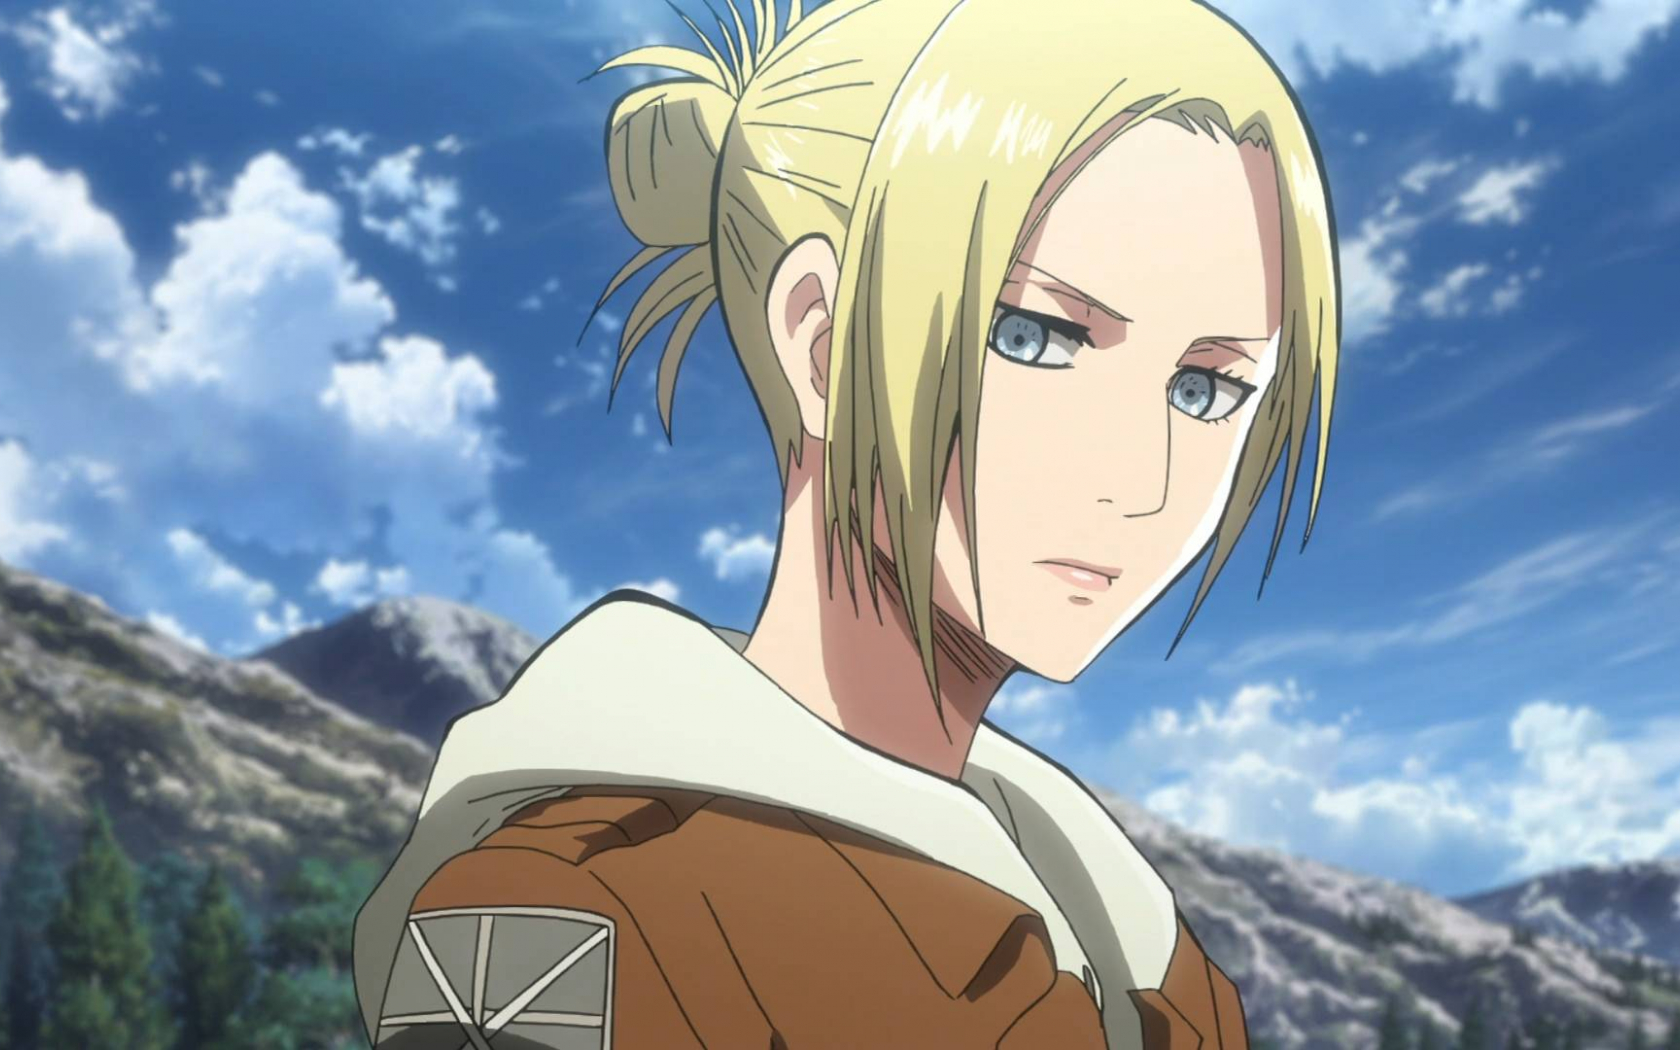 Free Download Annie Leonhart Attack On Titan Wallpaper 1920x1080 For Your Desktop Mobile Tablet Explore 50 Attack On Titan Annie Wallpaper Attack On Titans Wallpaper Attack On Titan Hd Wallpapers